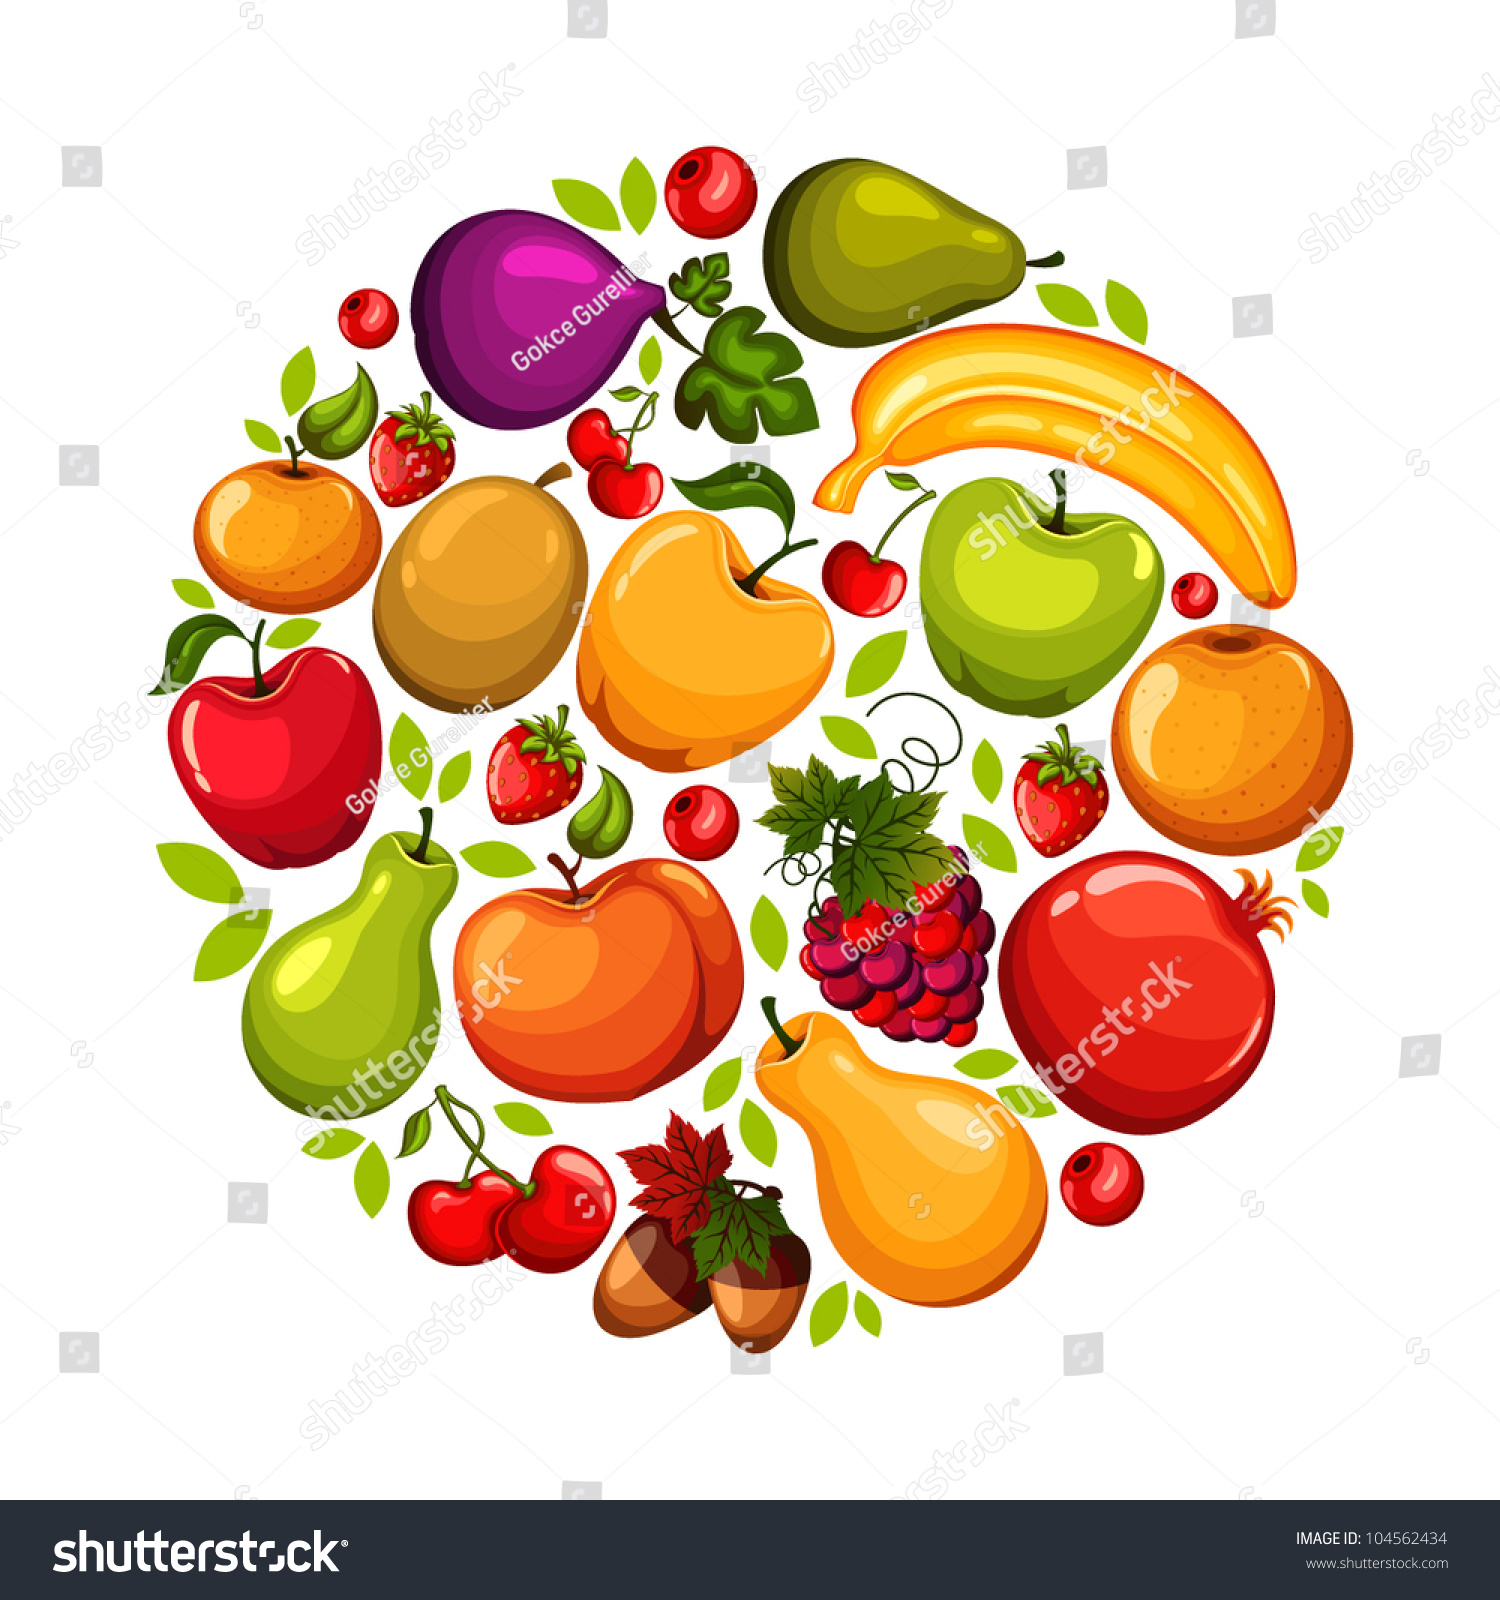 which fruit is the most healthy life fruit